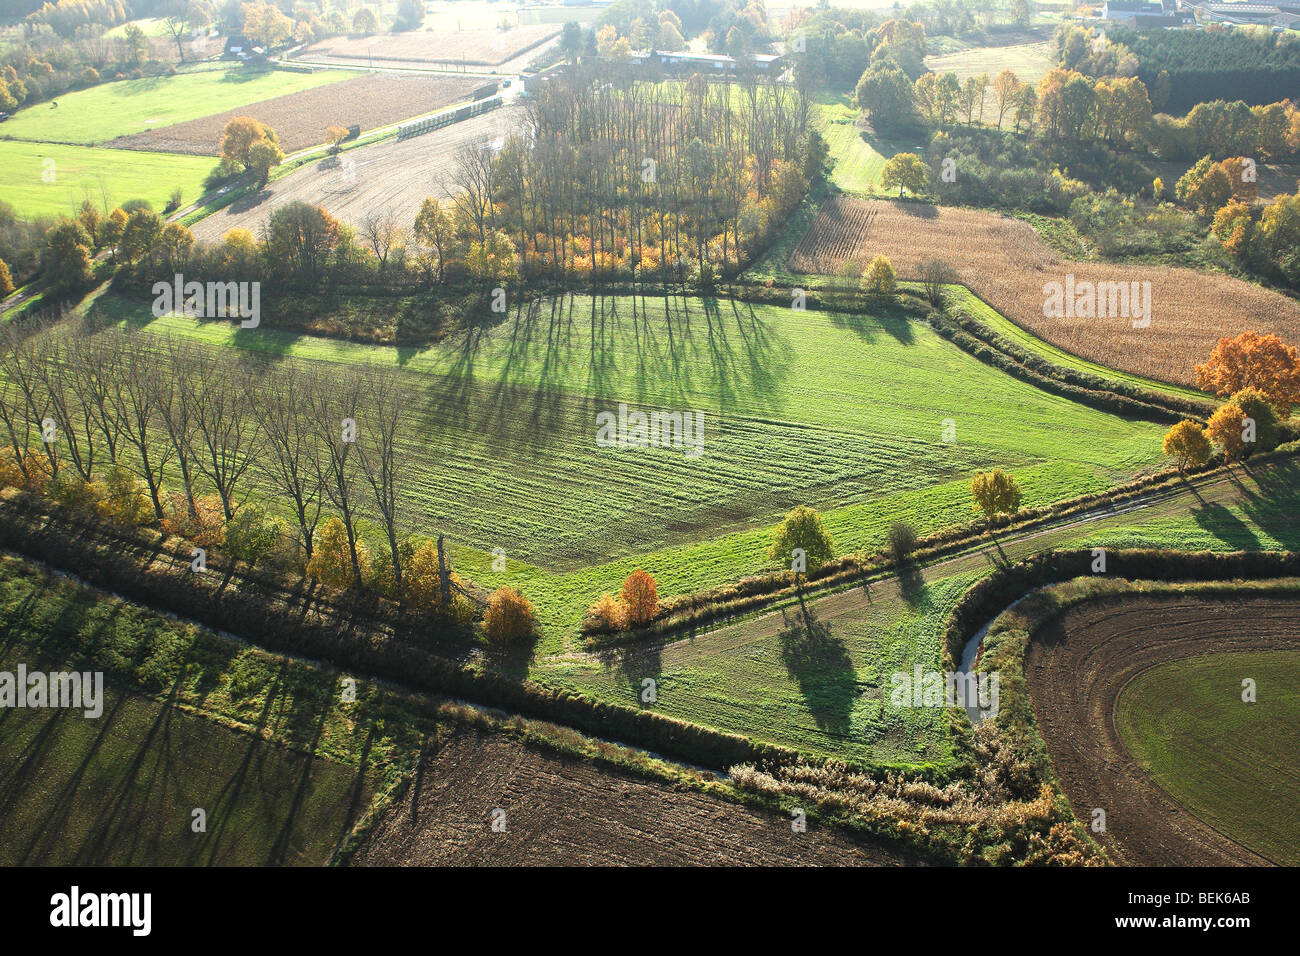 Agricultural area with fields, grasslands and hedges from the air in autumn, Belgium - Stock Image